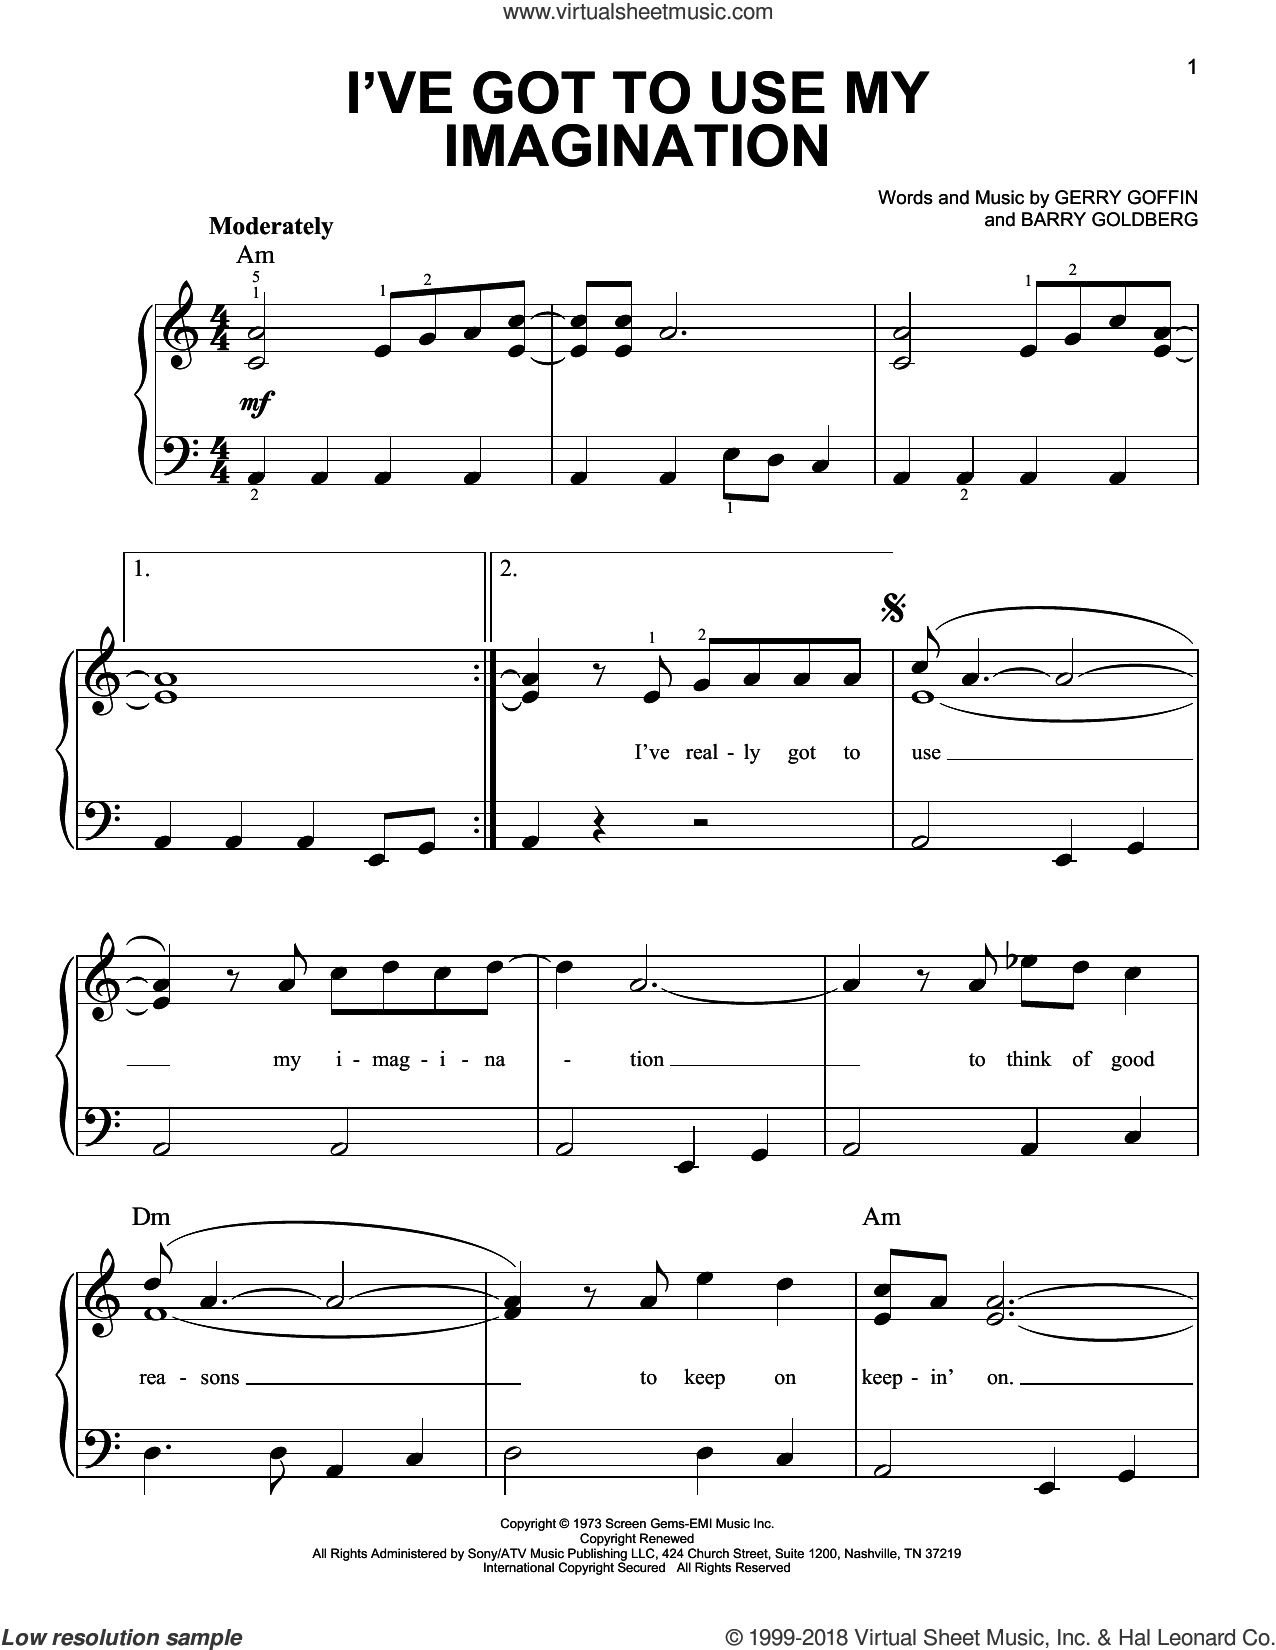 I've Got To Use My Imagination sheet music for piano solo by Gladys Knight & The Pips, Barry Goldberg and Gerry Goffin, beginner skill level